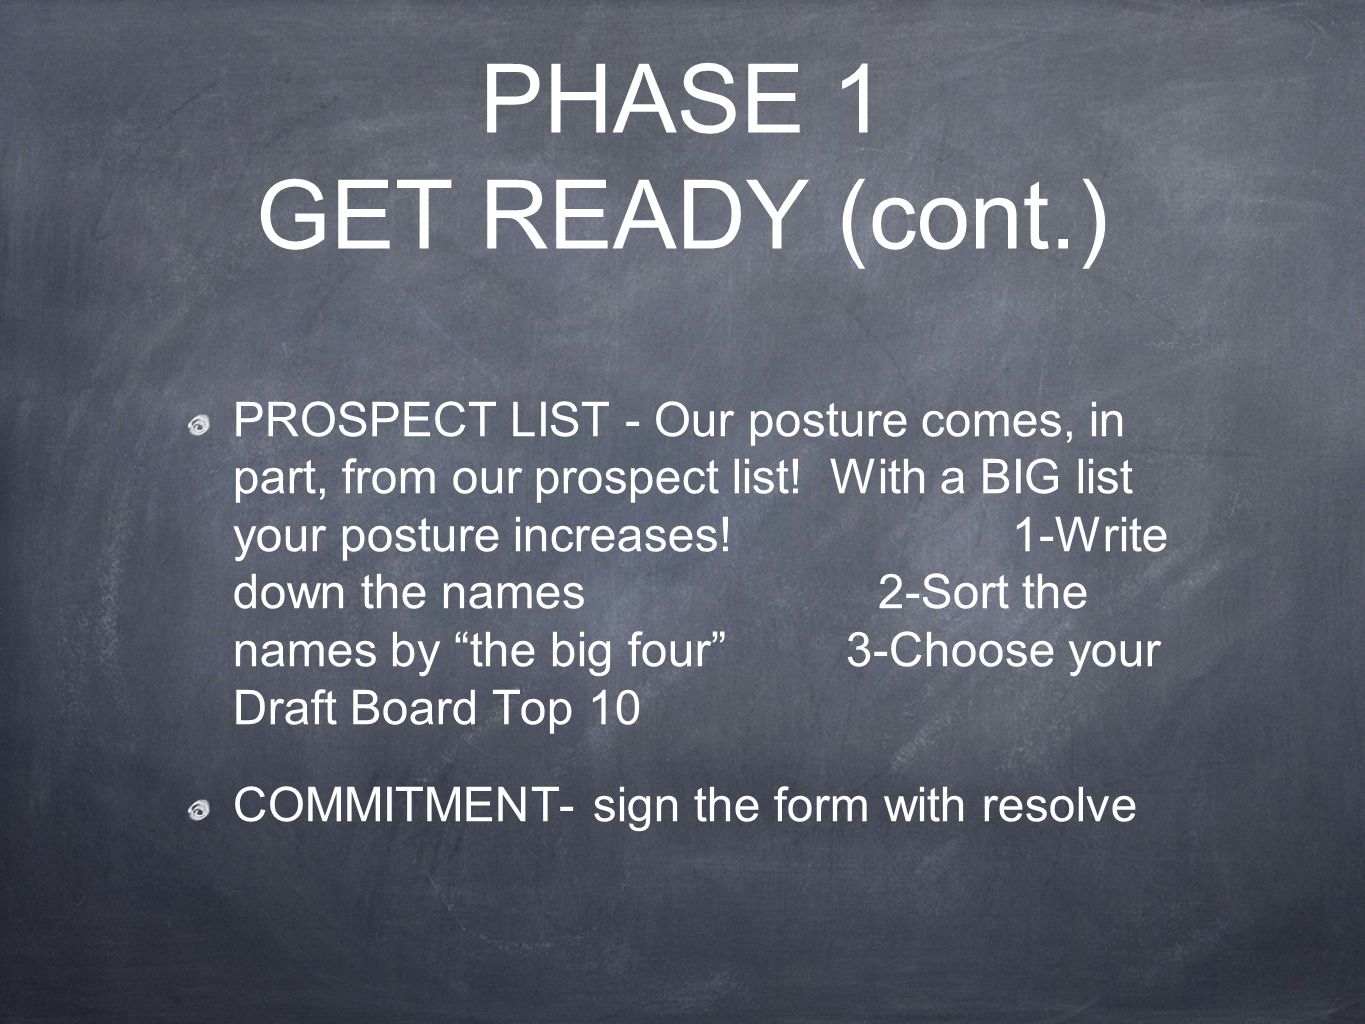 PHASE 1 GET READY (cont.) PROSPECT LIST - Our posture comes, in part, from our prospect list.